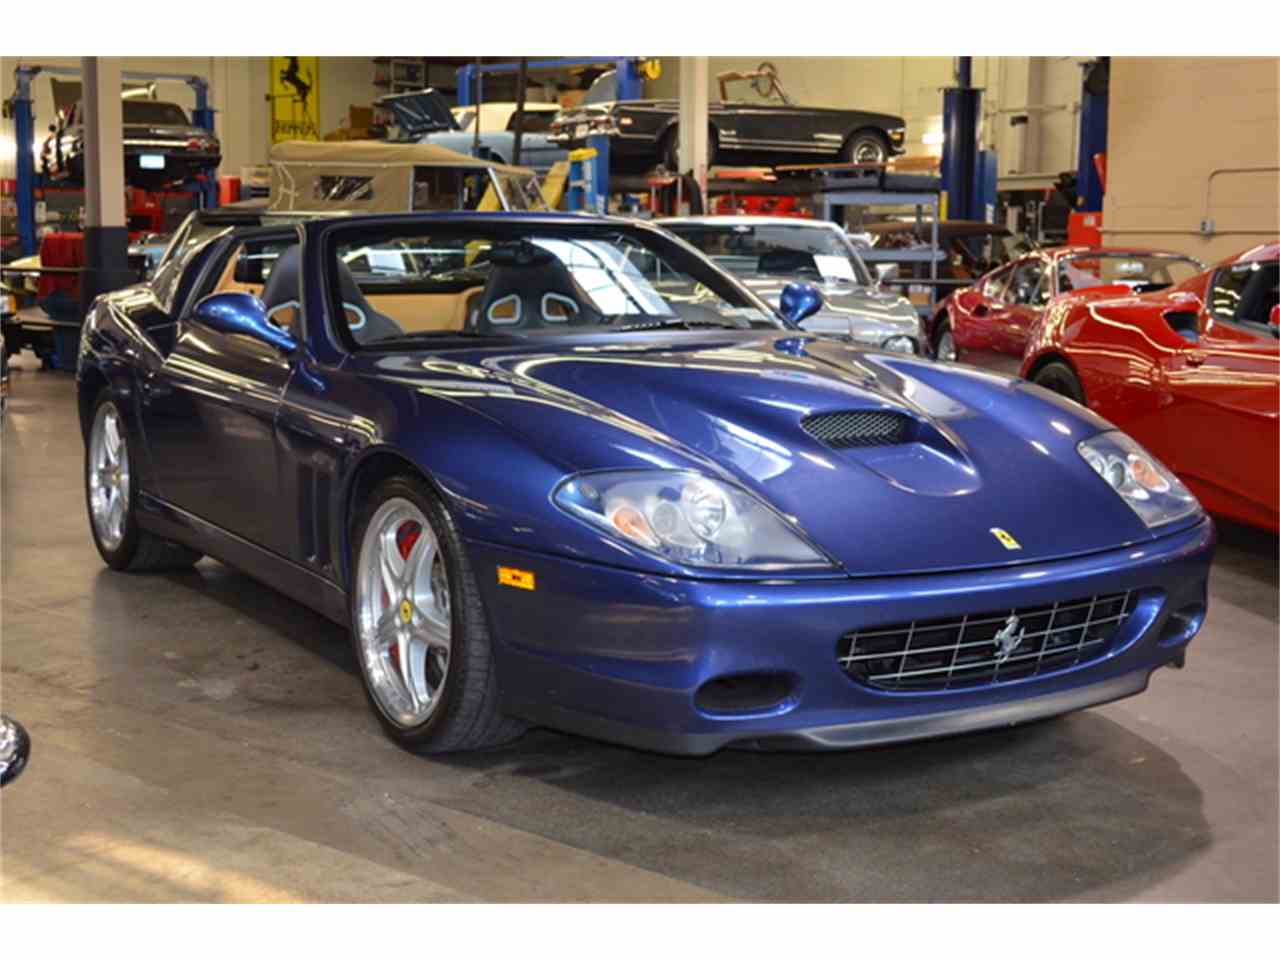 2005 Ferrari 575 for Sale - CC-991240